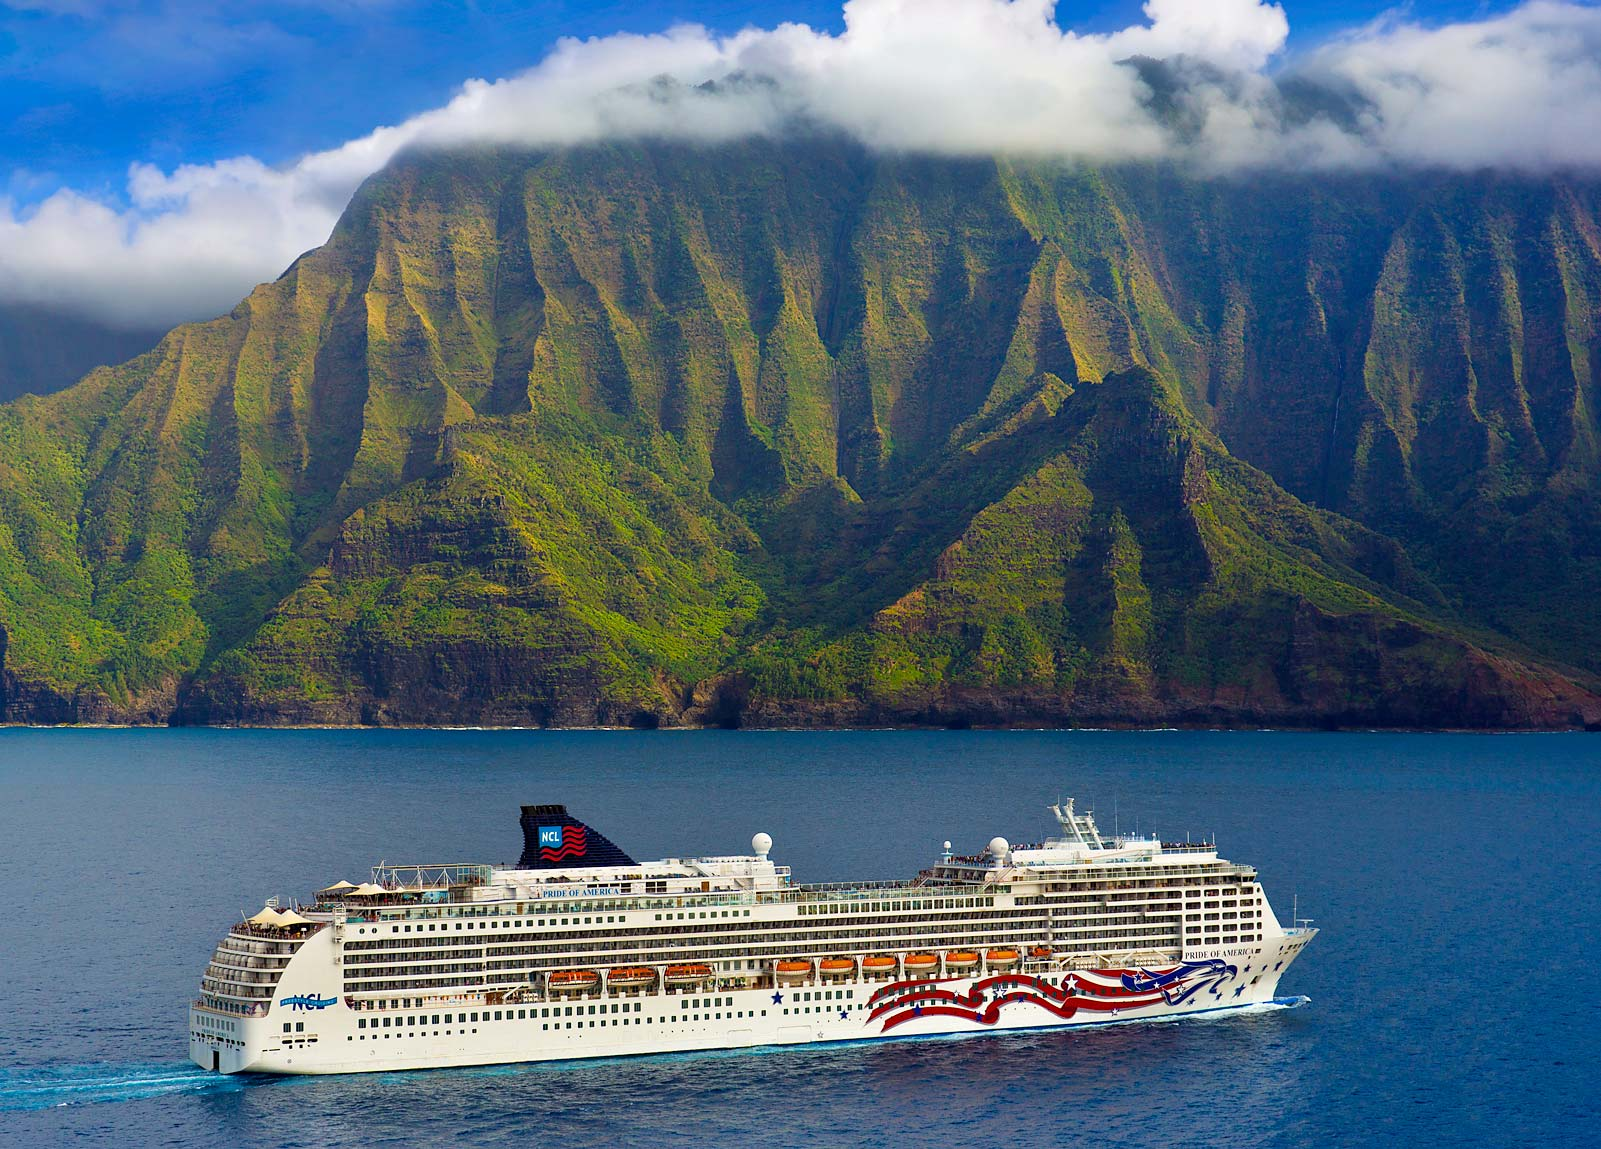 The Freedom Cruise sailed the Hawaiian Islands in 2006